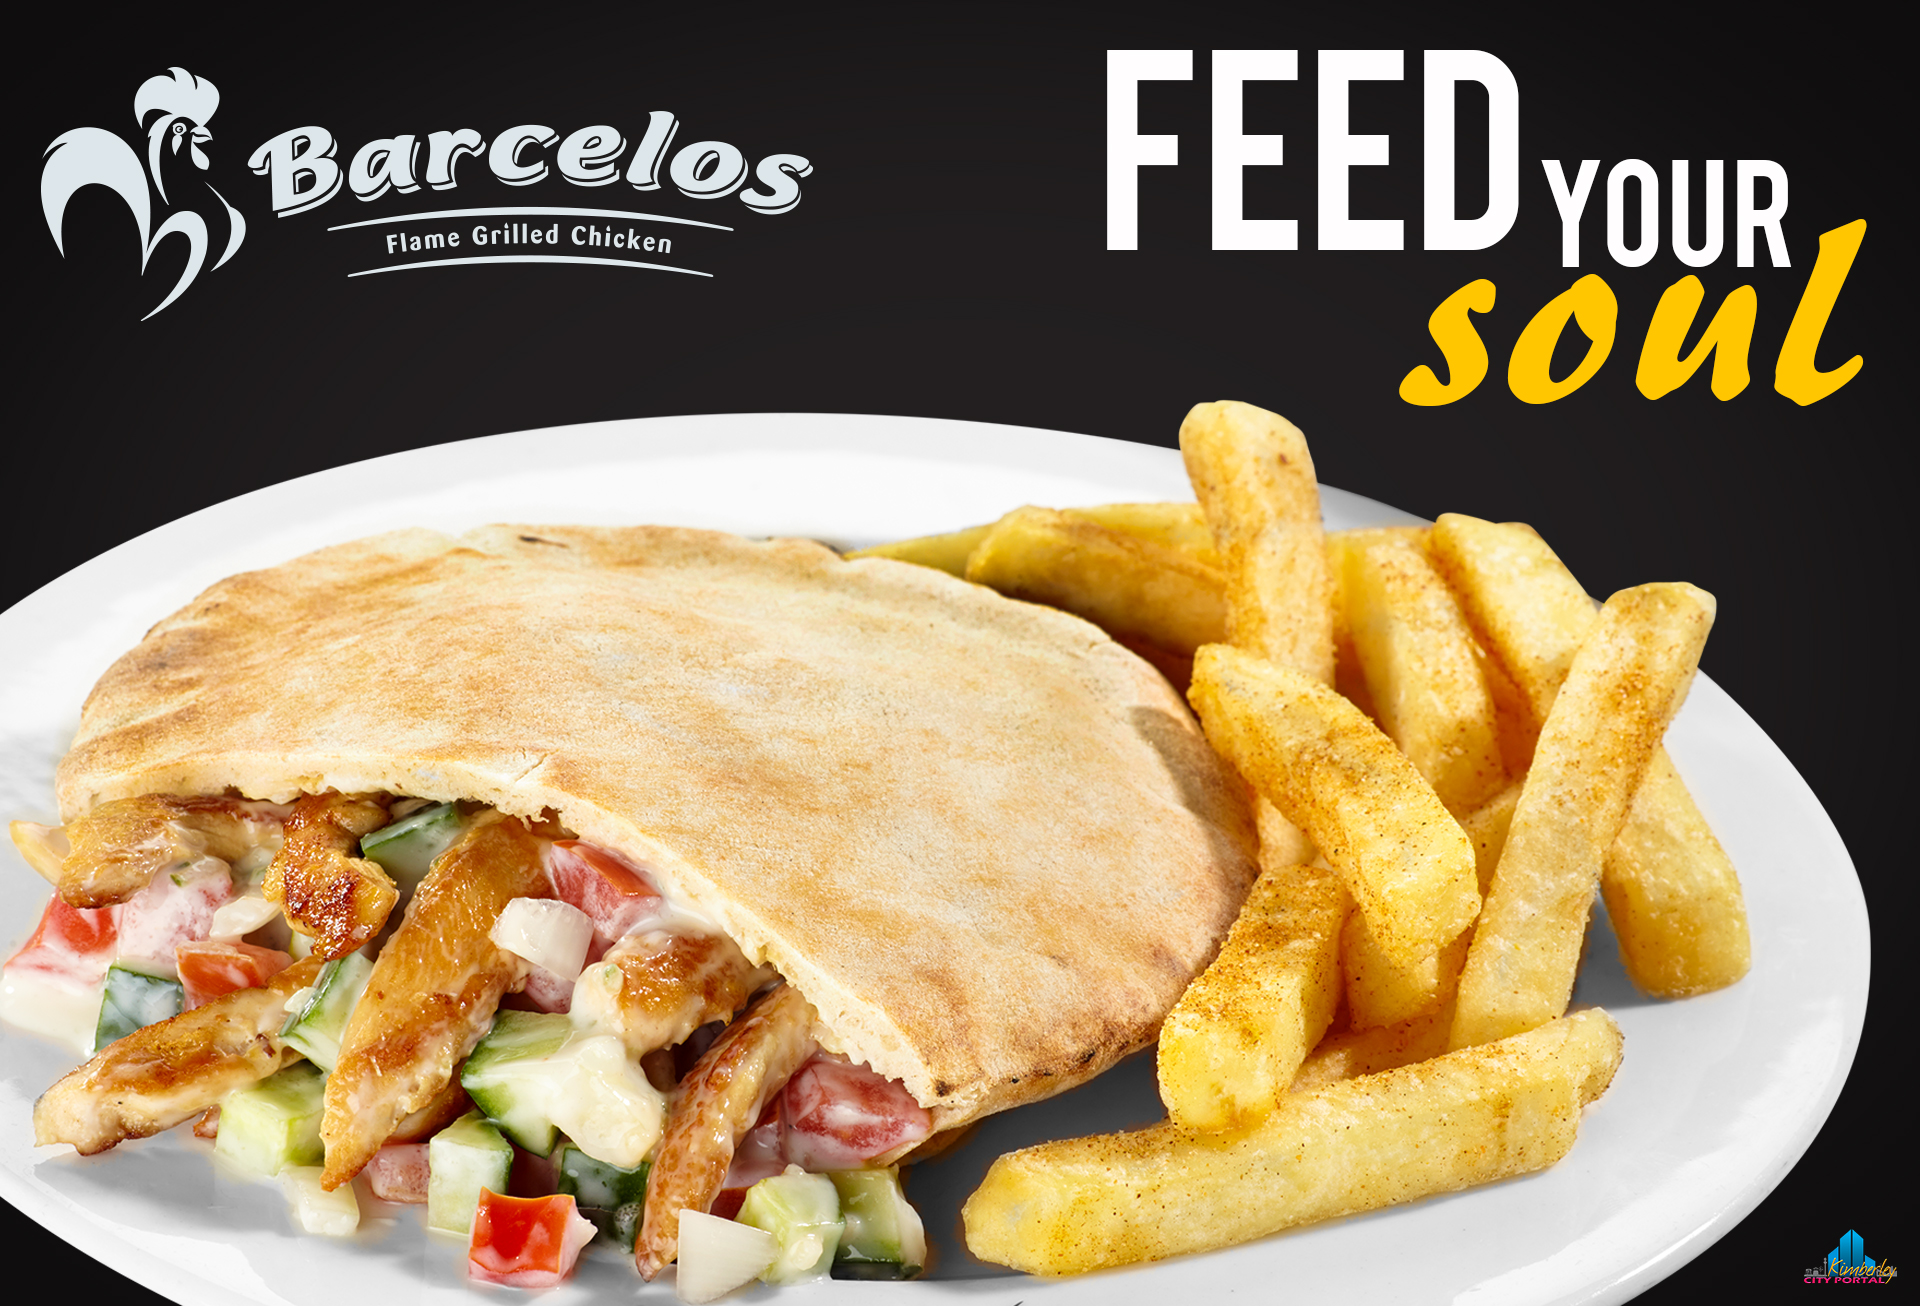 Barcelos Kimberley: Feed your soul